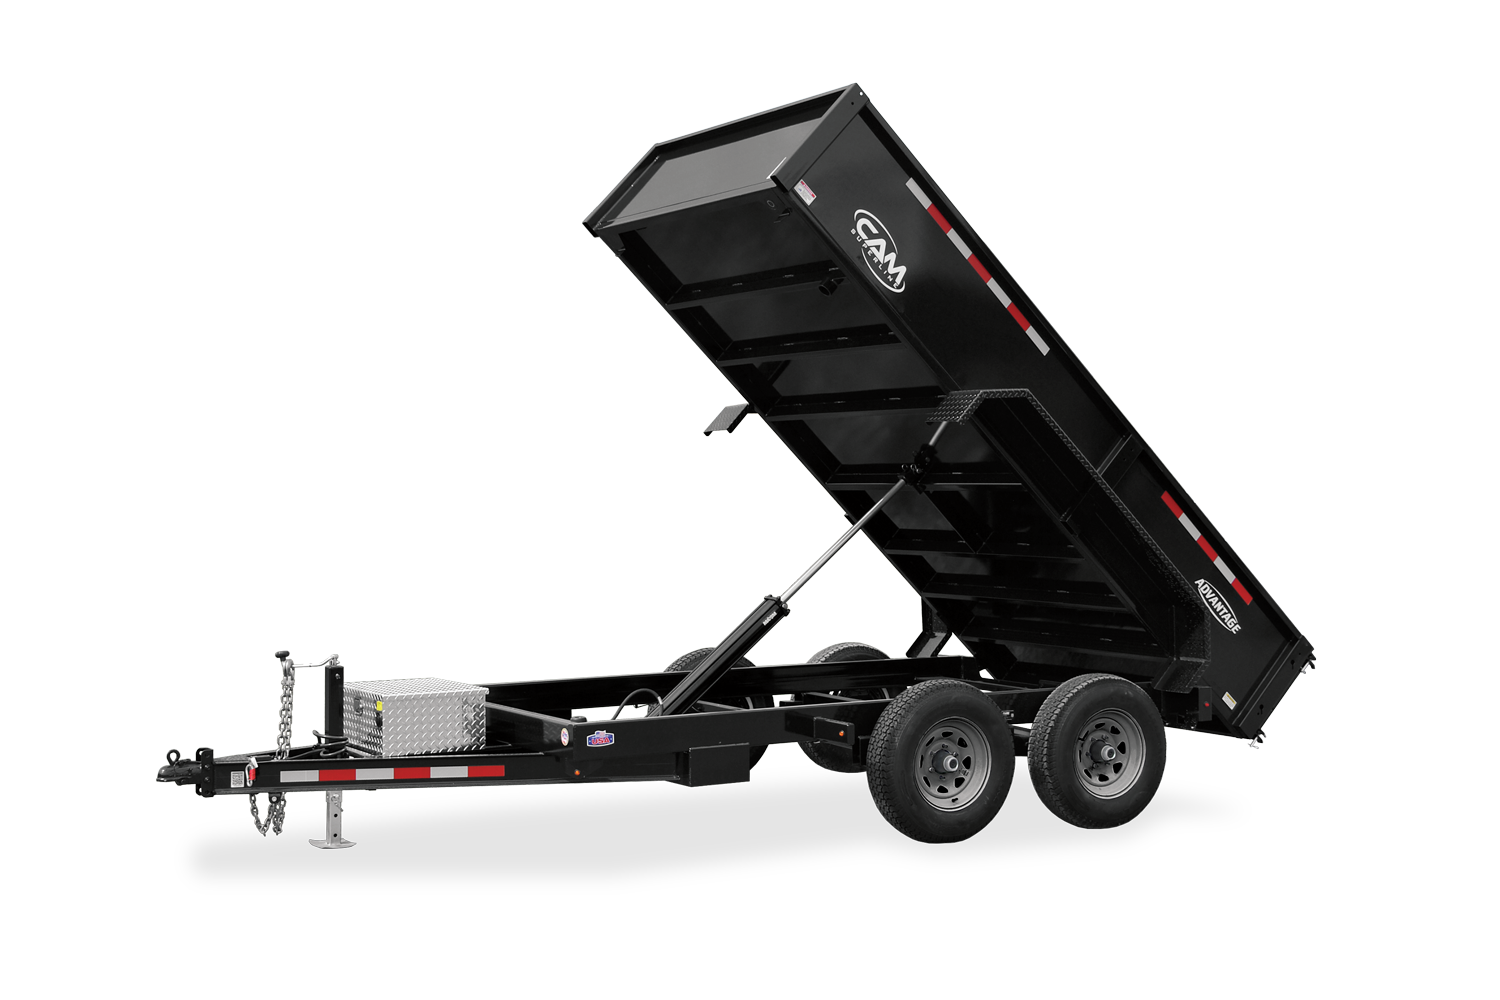 2021 Cam Superline 5 Ton Advantage 6' Wide x 12' Long Low Profile Dump Trailer